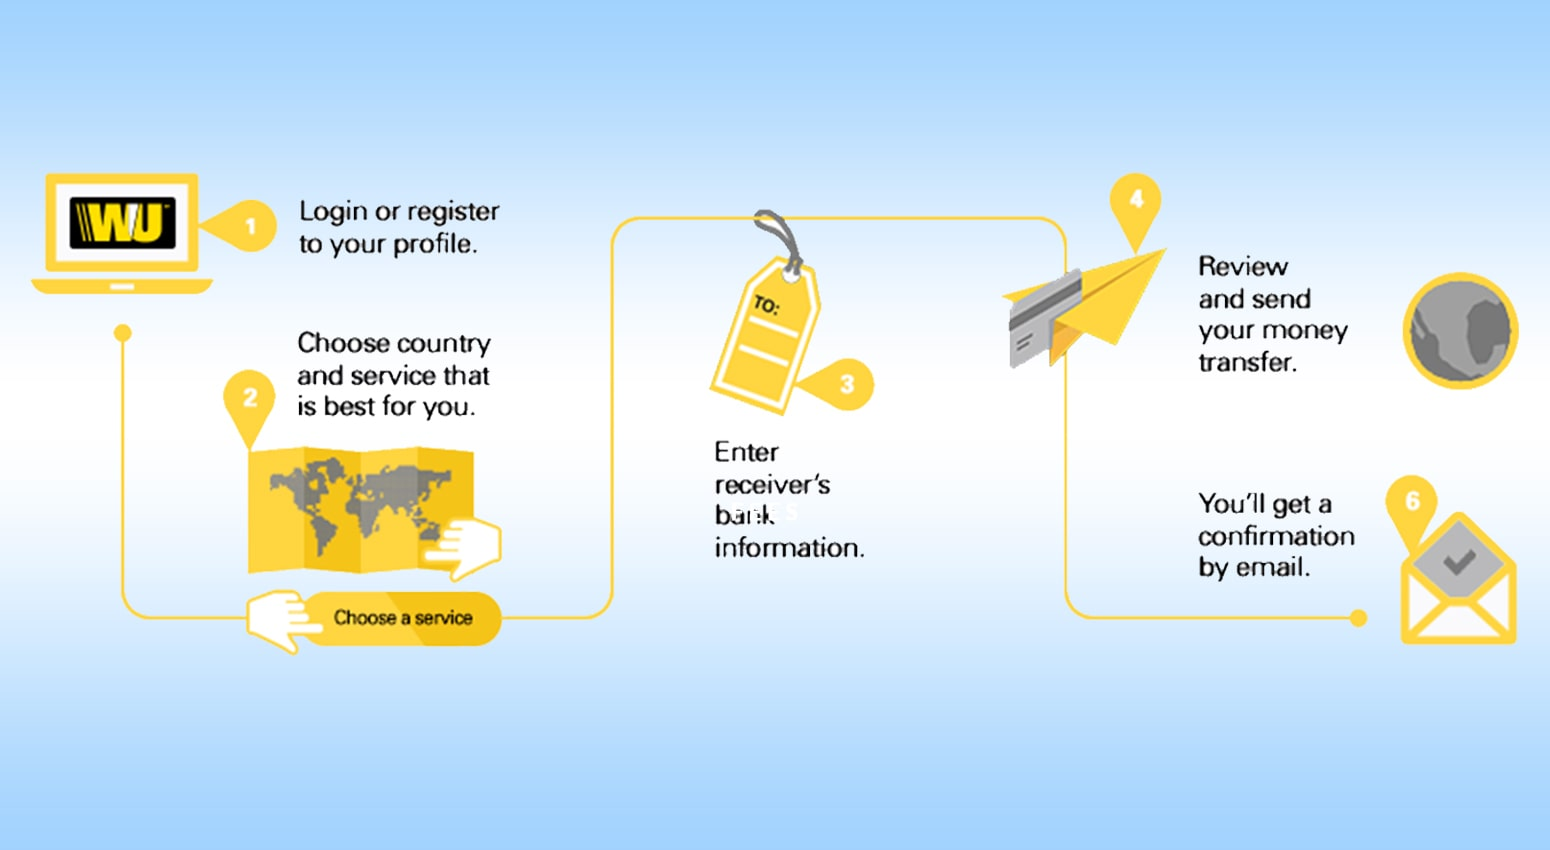 Registering And Transferring With Western Union